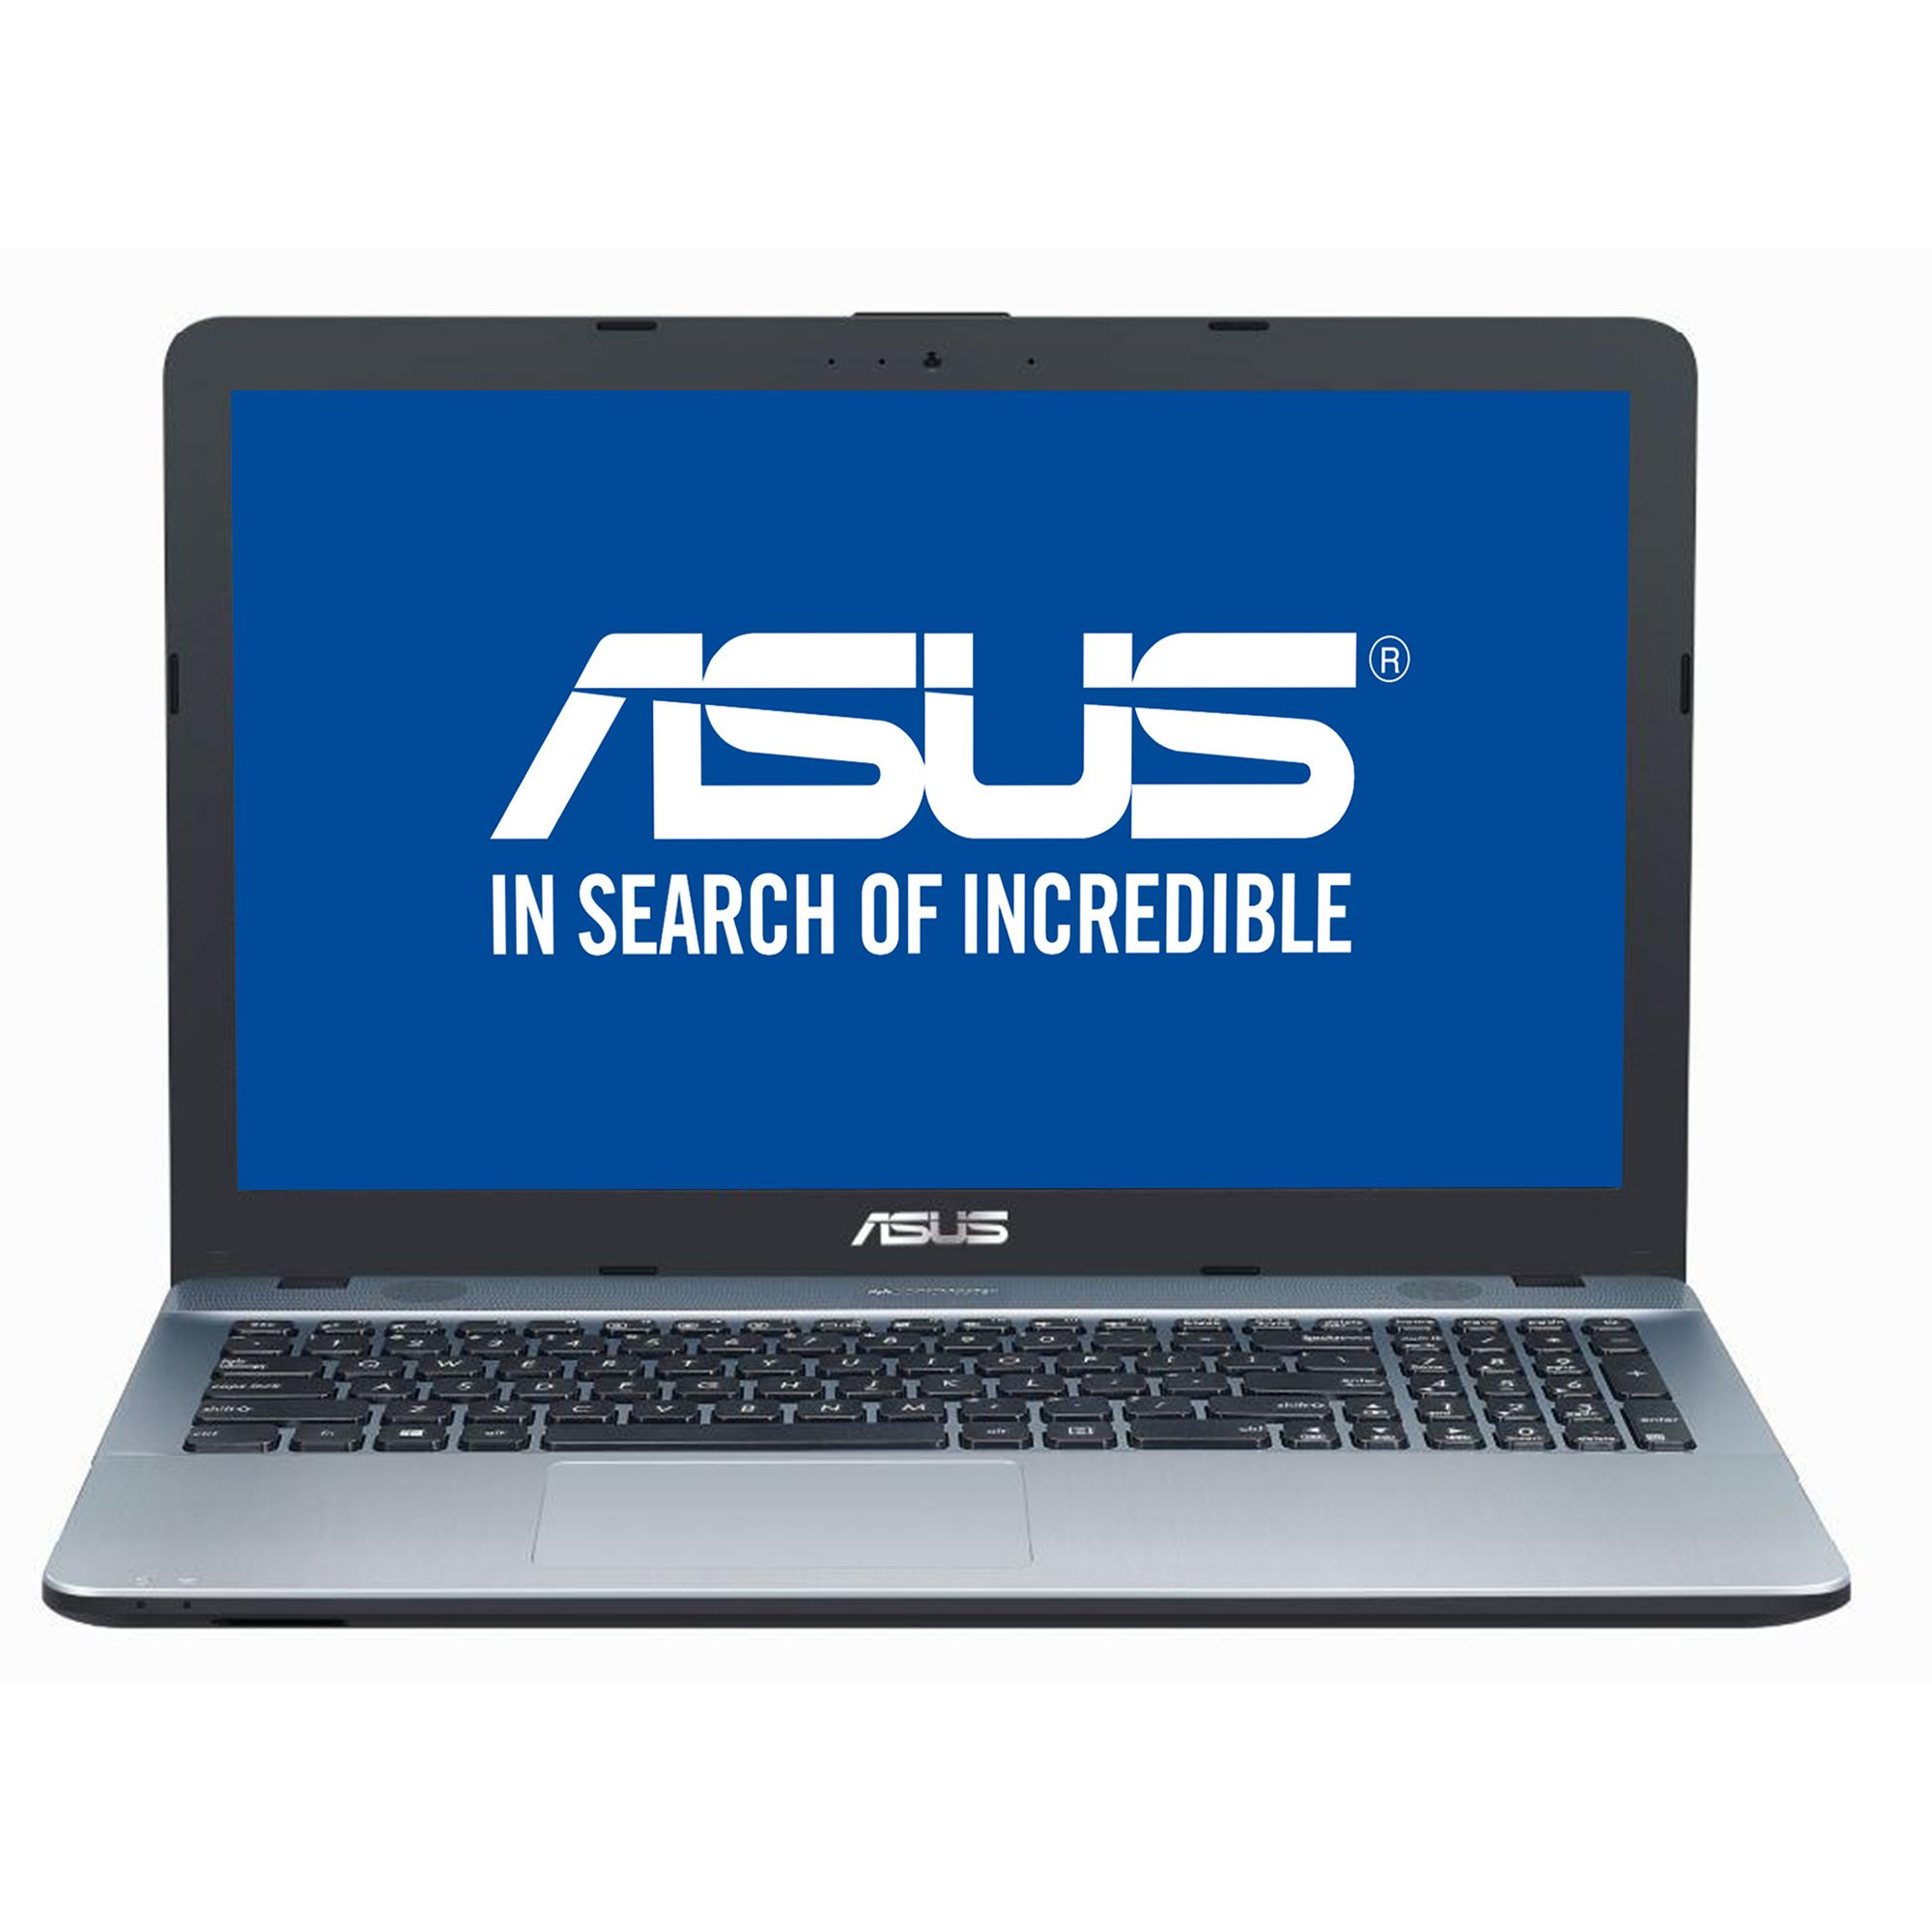 "Laptop Asus Vivobook Max X541uv-xx745 Intel I3-6006u 15.6"" Led"